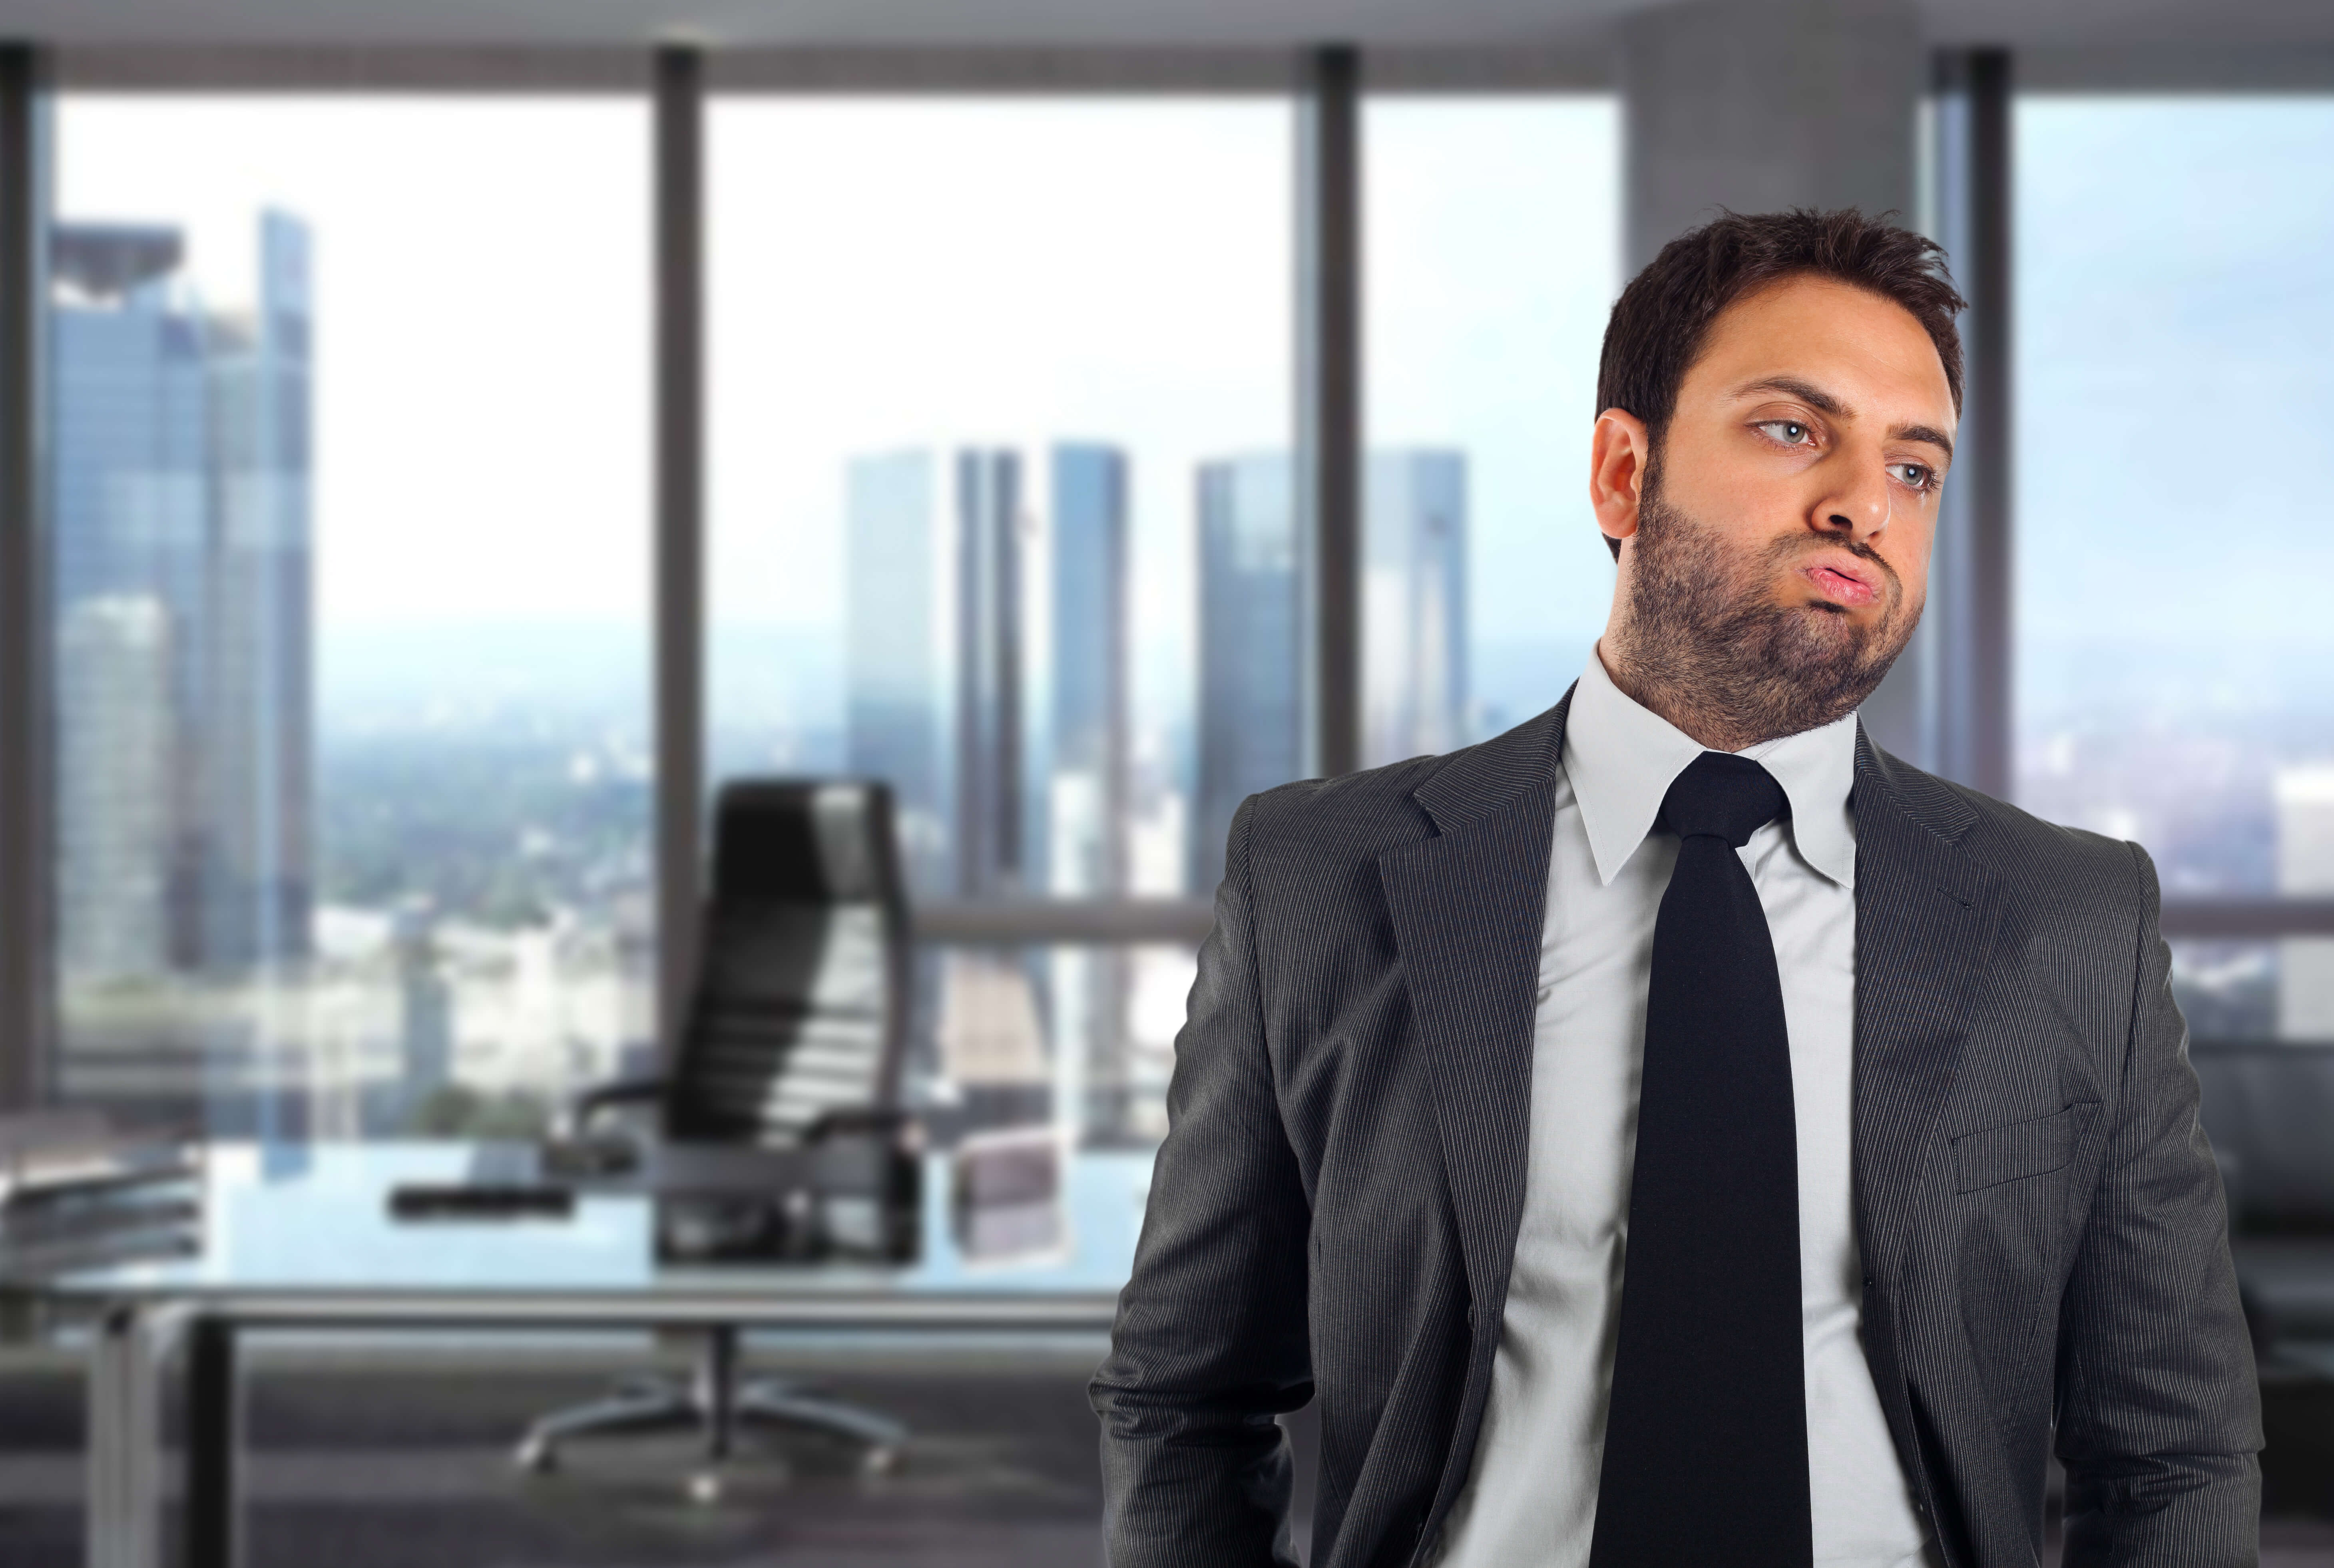 picture of a disengaged employee who needs employee engagement training